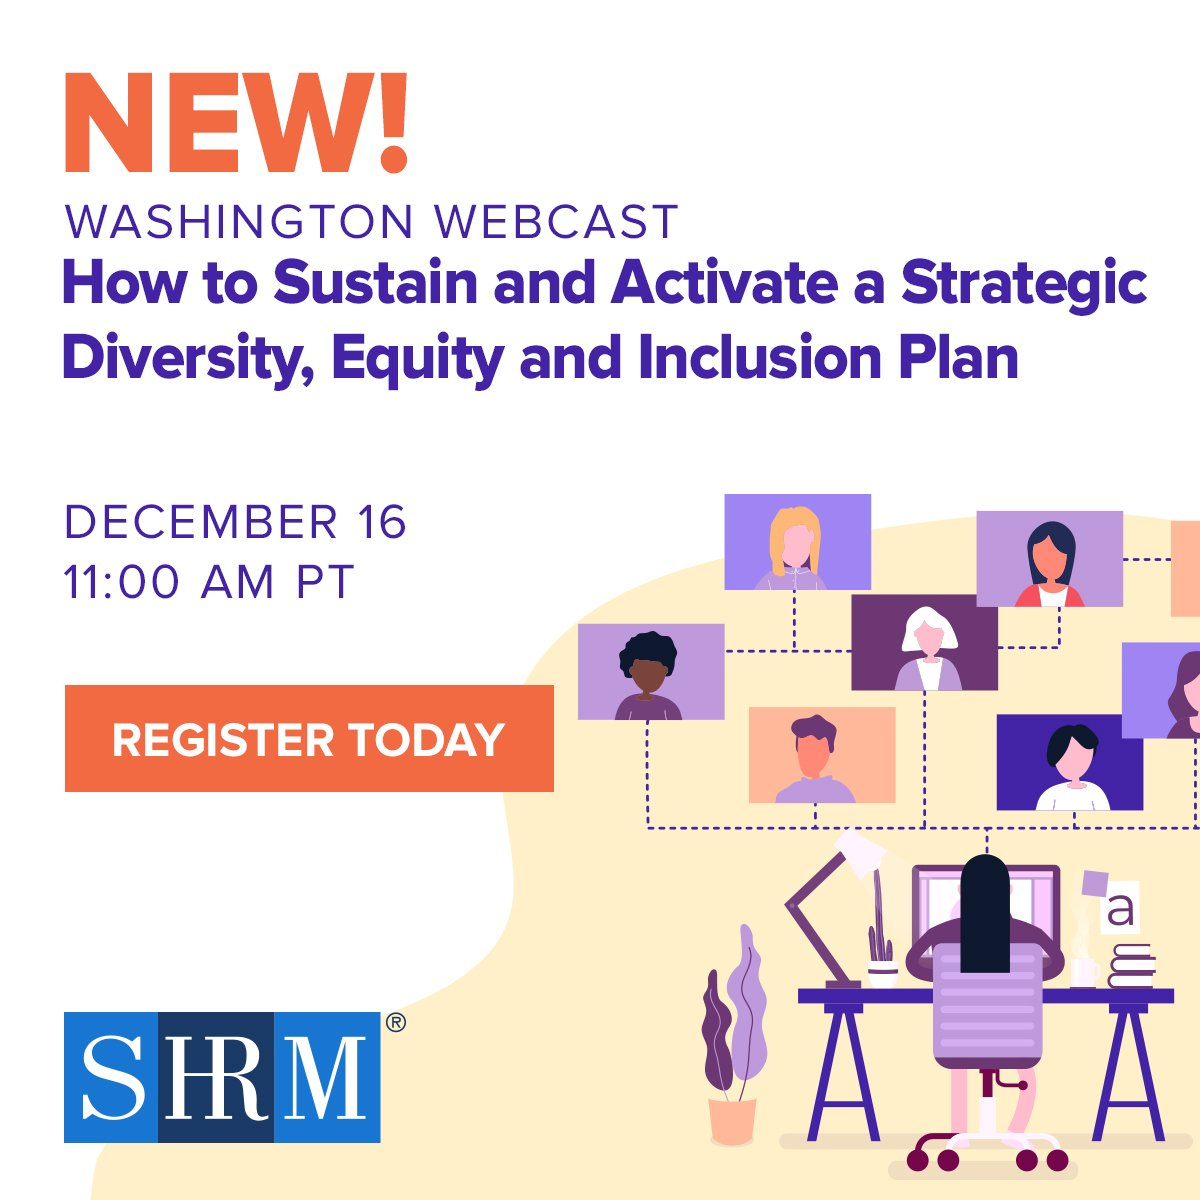 Free! Webcast – How to Sustain and Activate a Strategic Diversity, Equity and Inclusion Plan